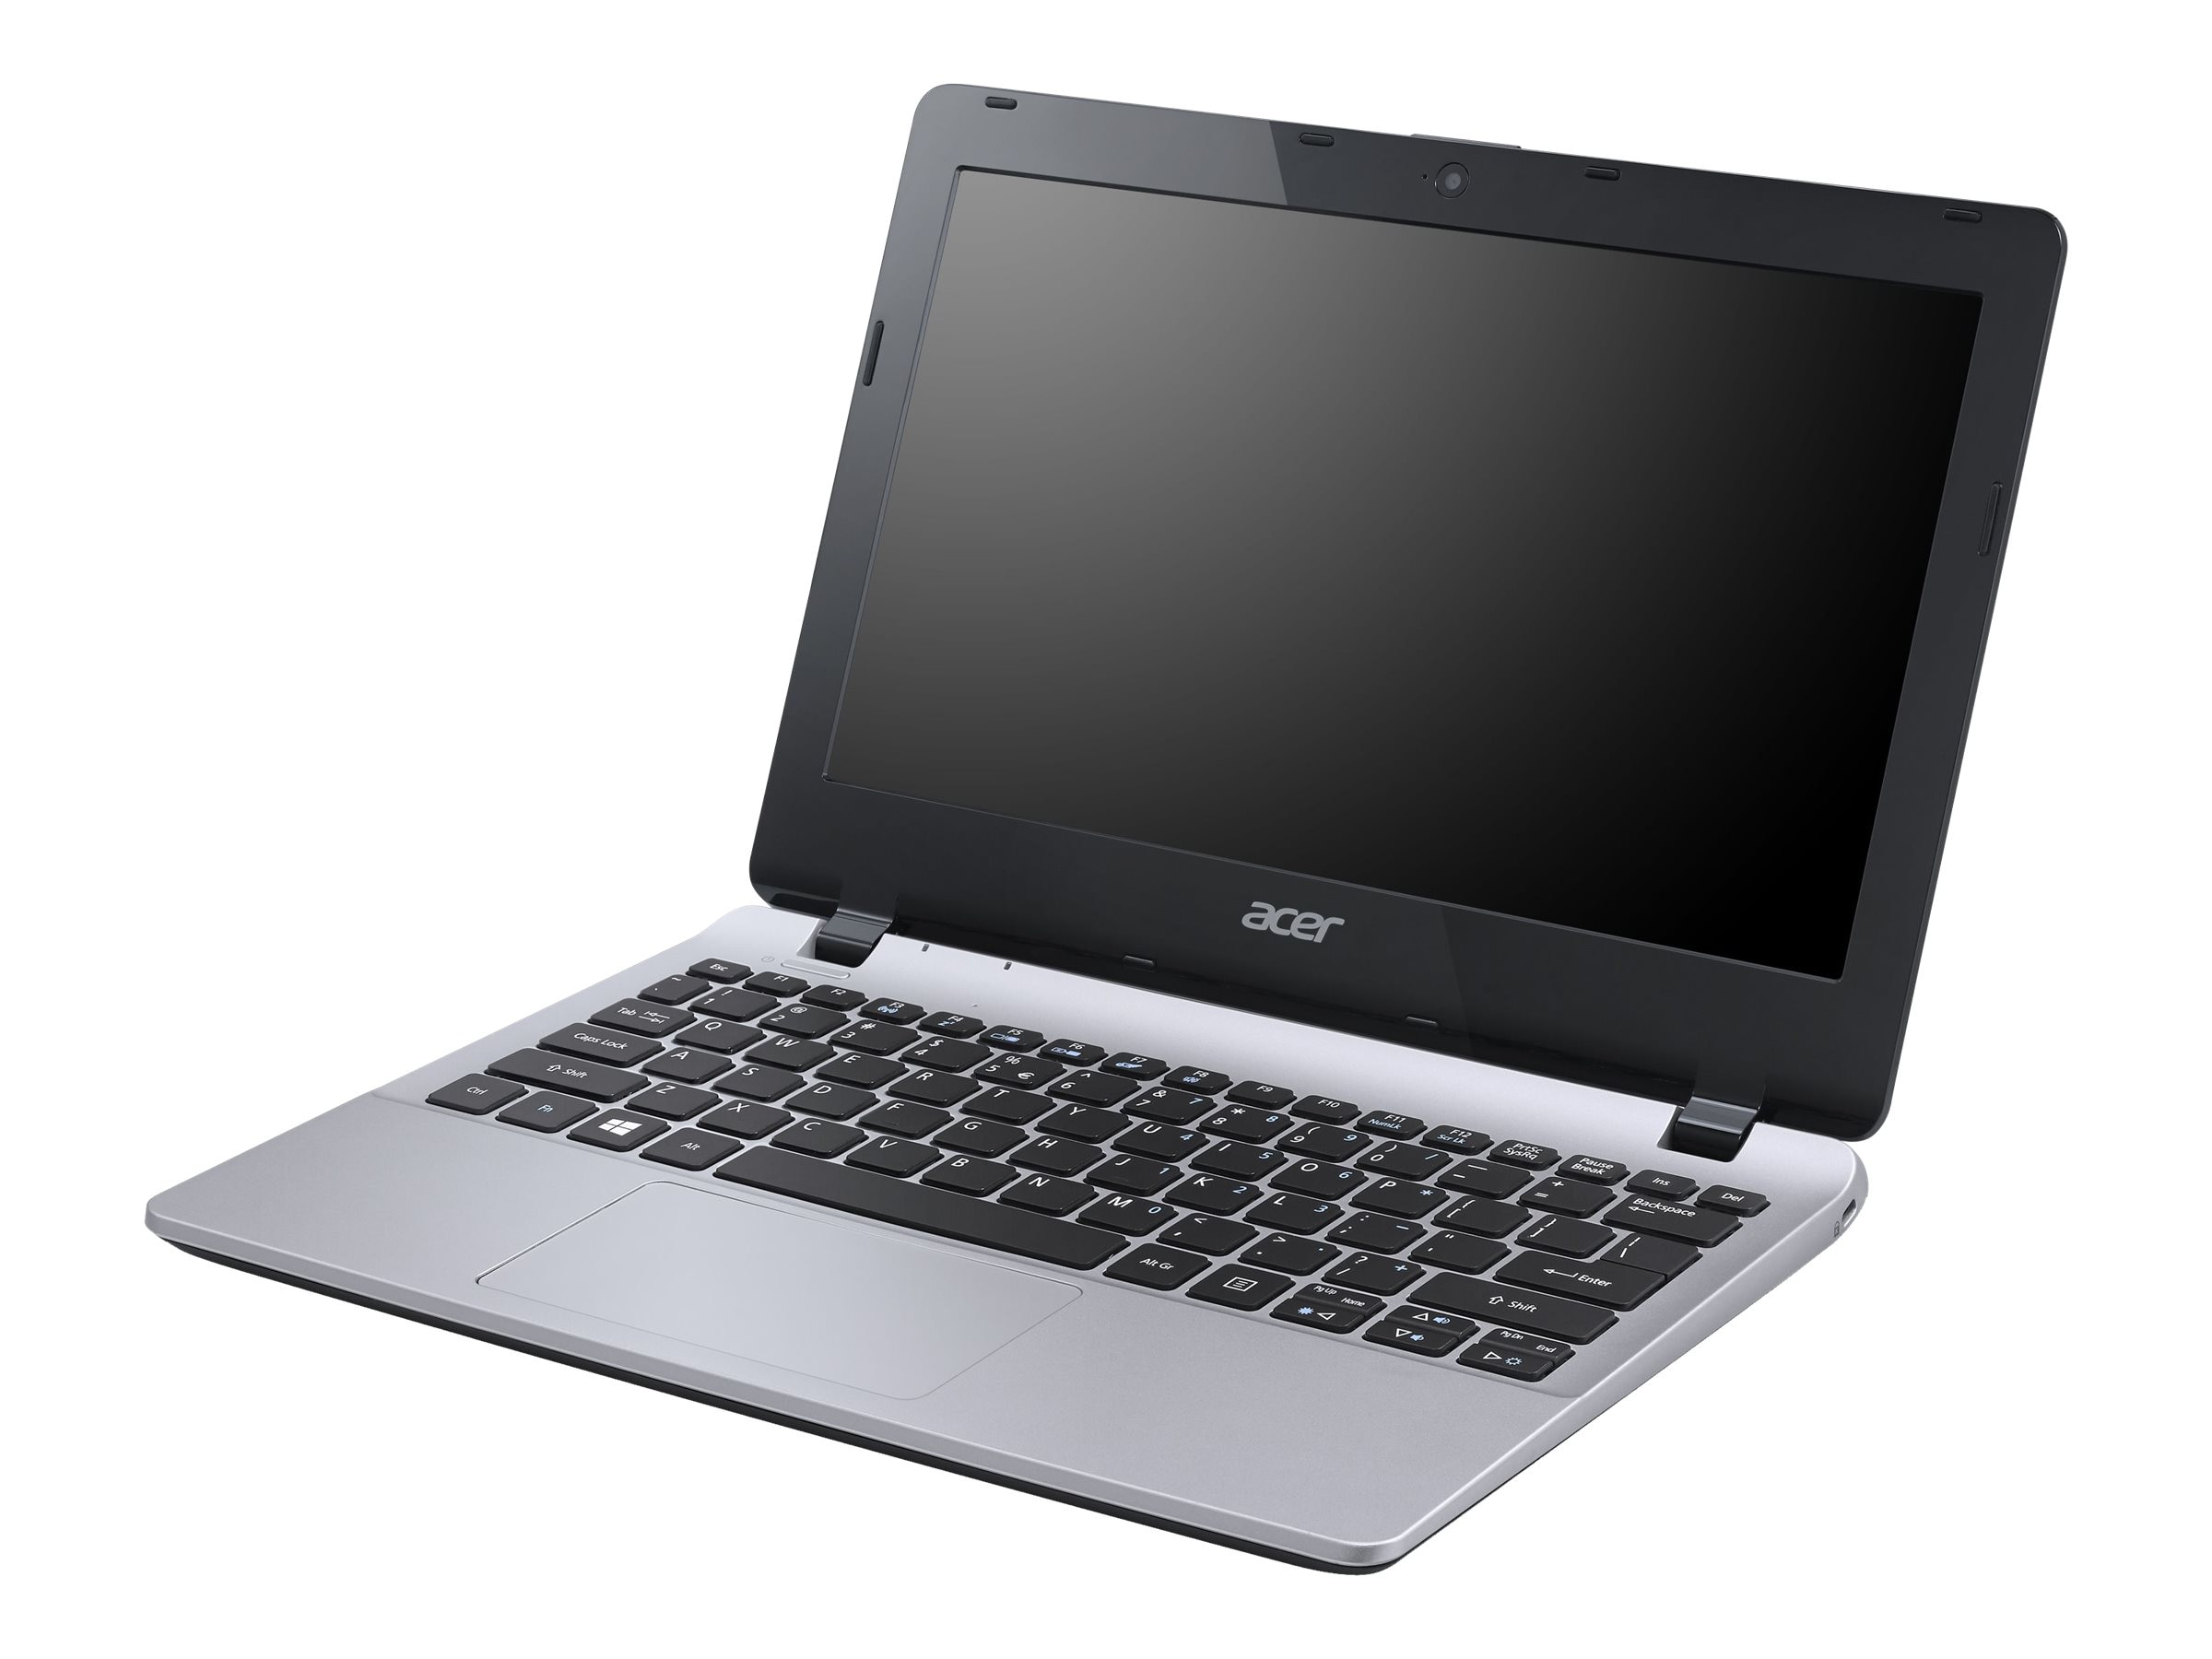 Acer Aspire E3-111-P60S 2.16GHz Pentium 11.6in display, NX.MQVAA.002, 17751450, Notebooks